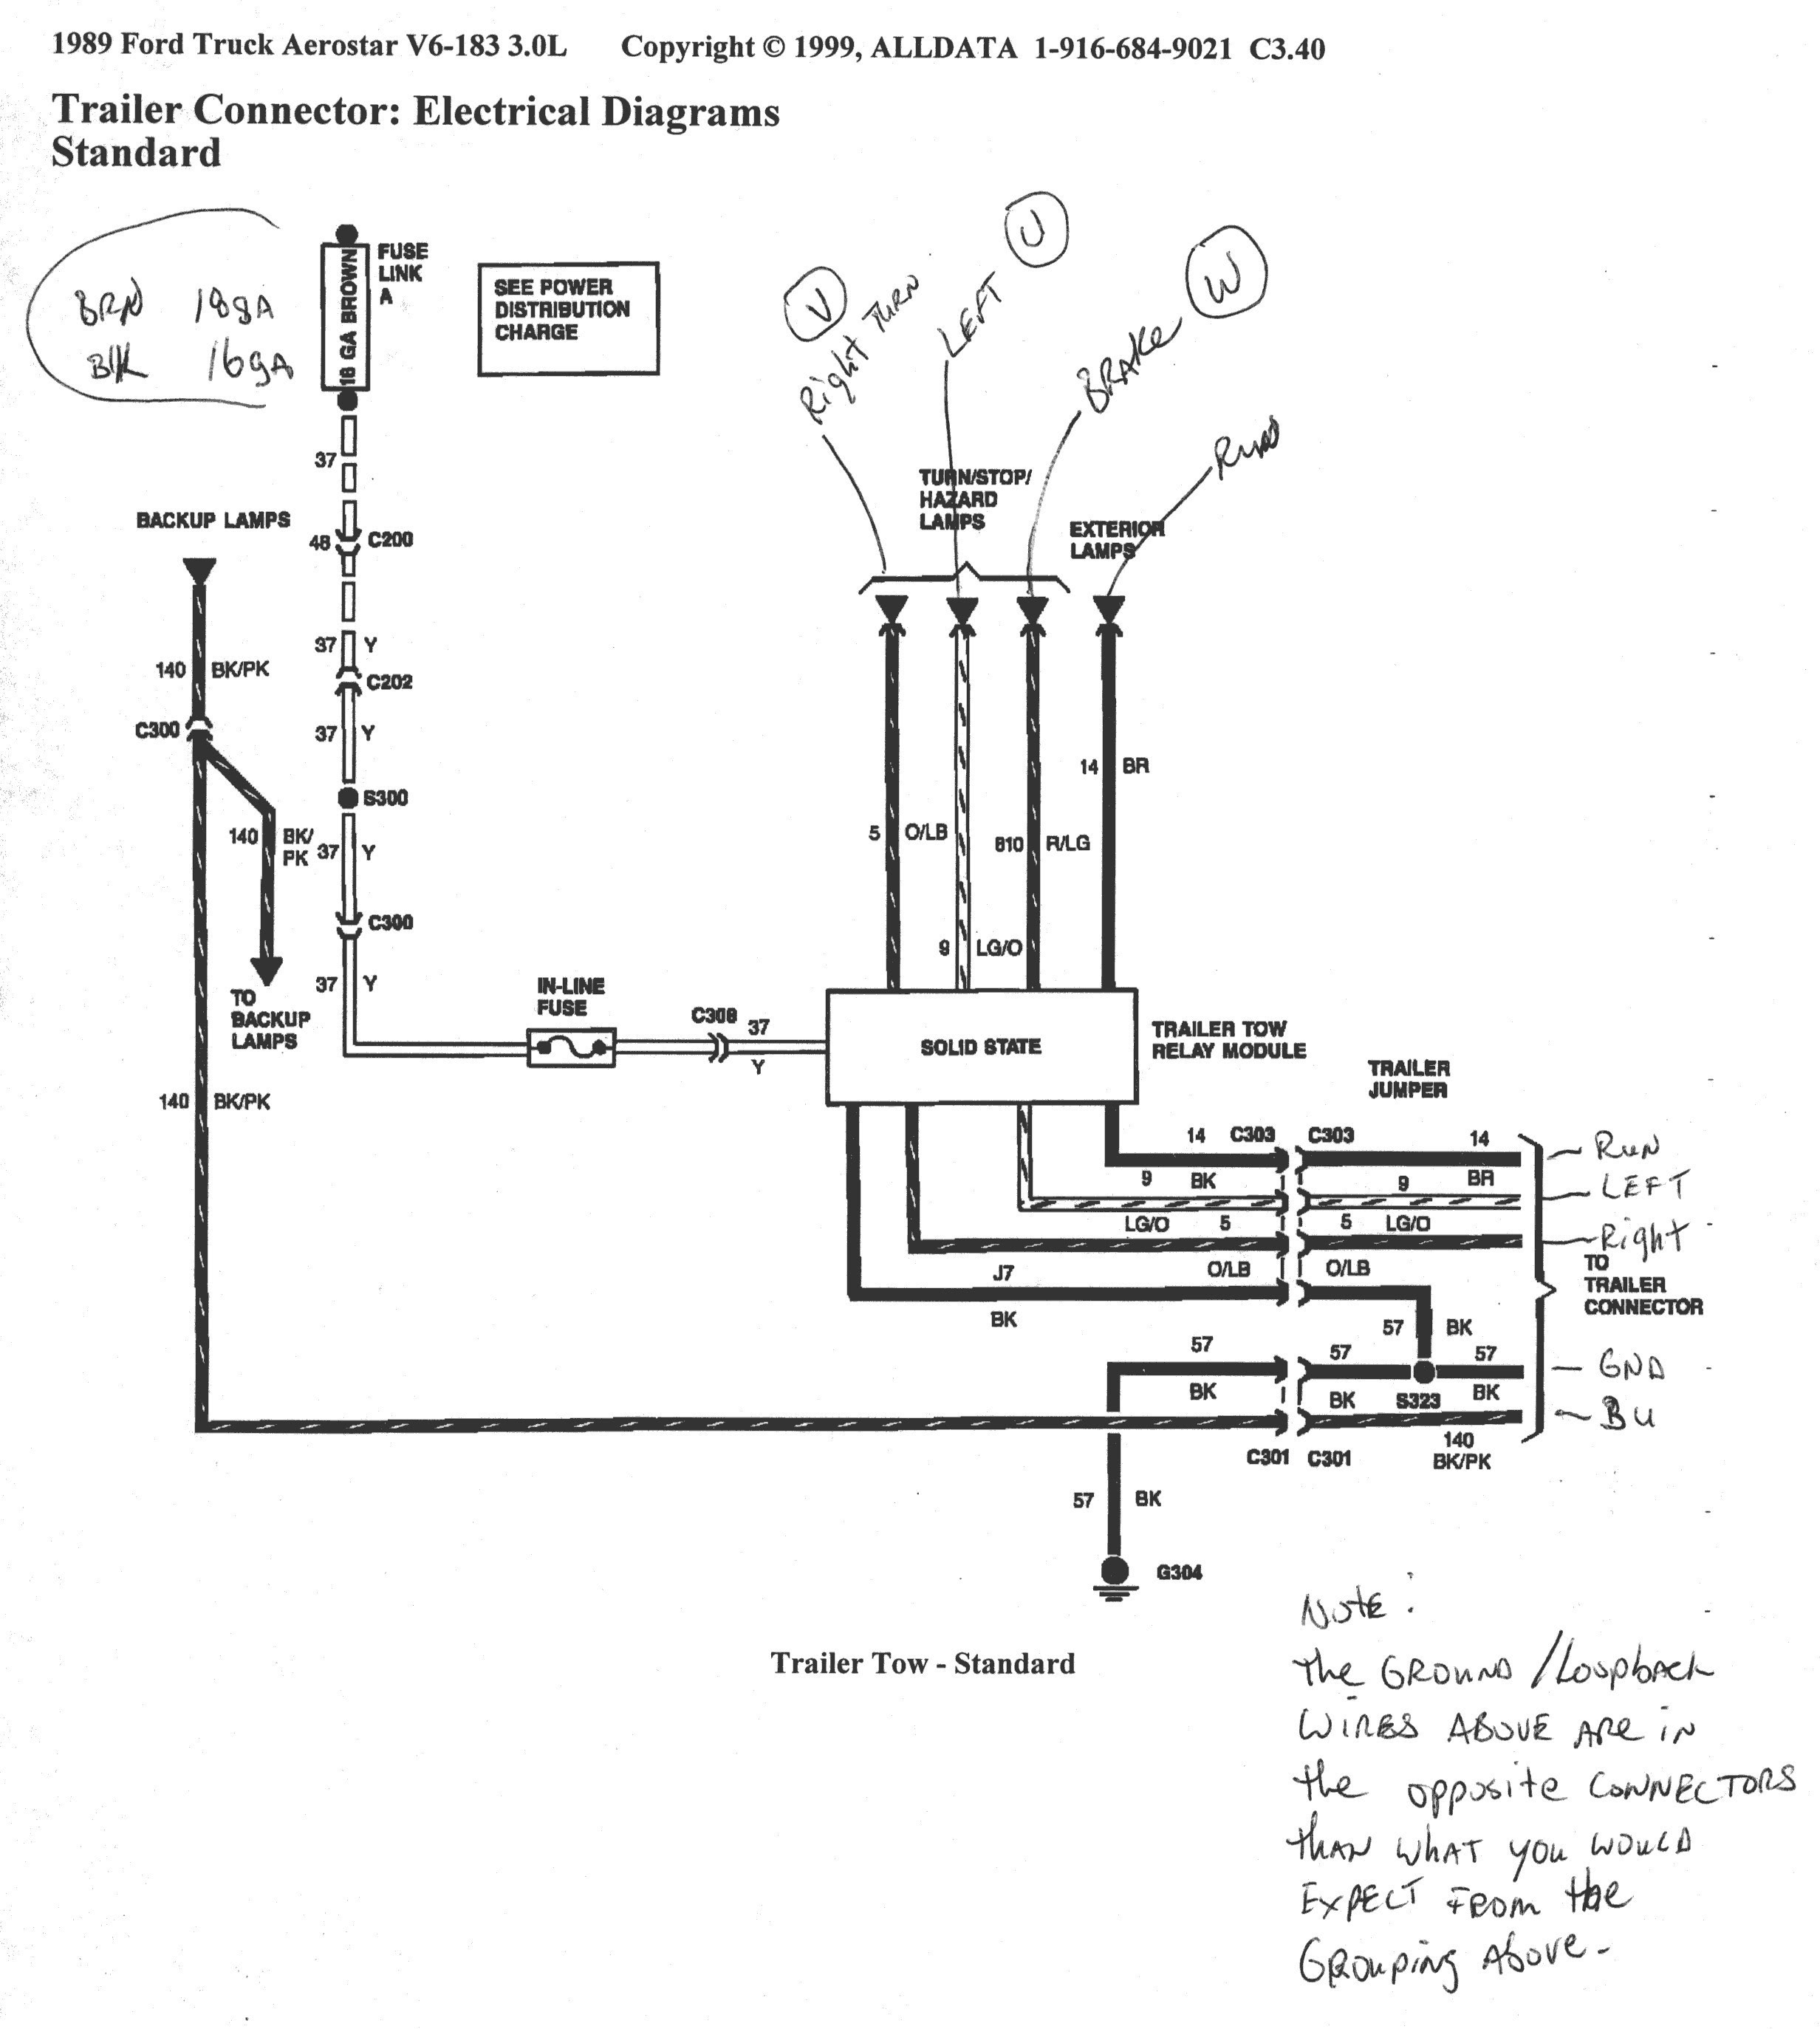 Ford F650 Wiring Schematic - Wiring Diagram | Ford F650 Super Duty Wire Diagram |  | Wiring Diagram